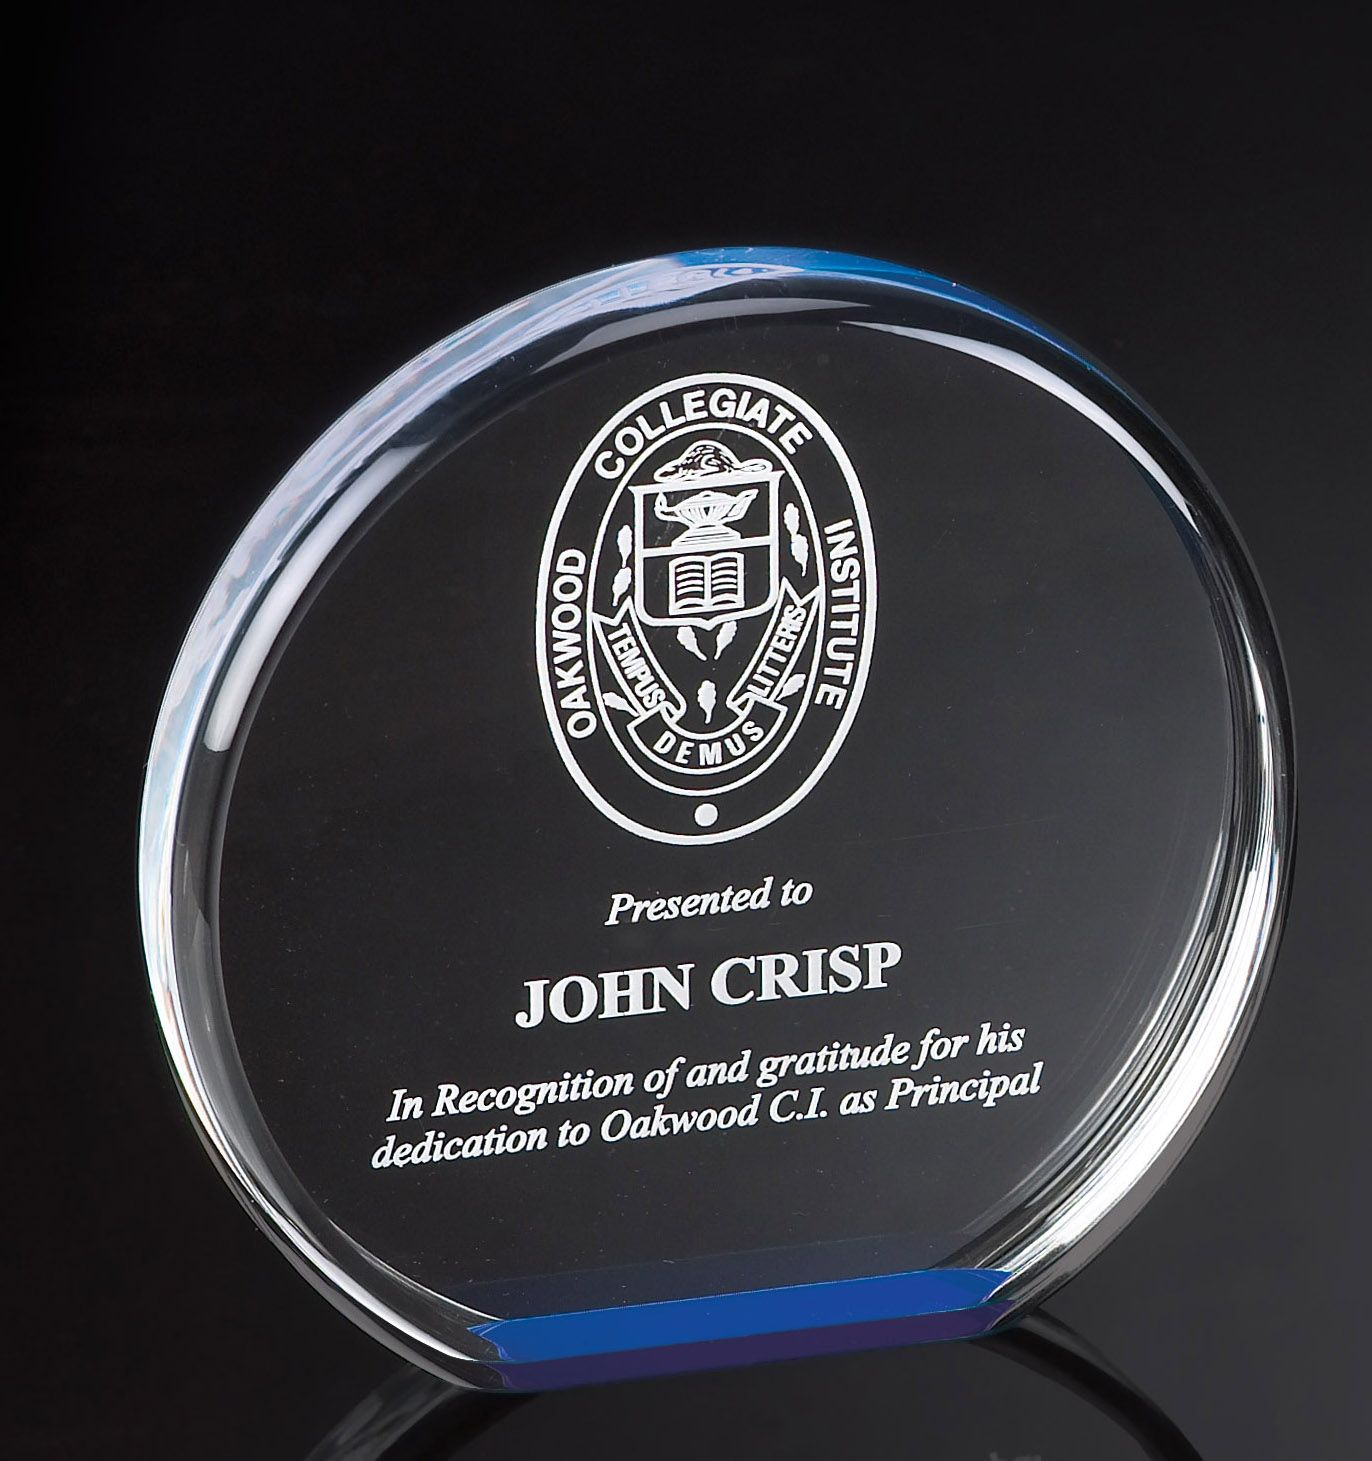 This unique acrylic award features a dramatic blue reflective base which illuminates the color throughout the circular shape.